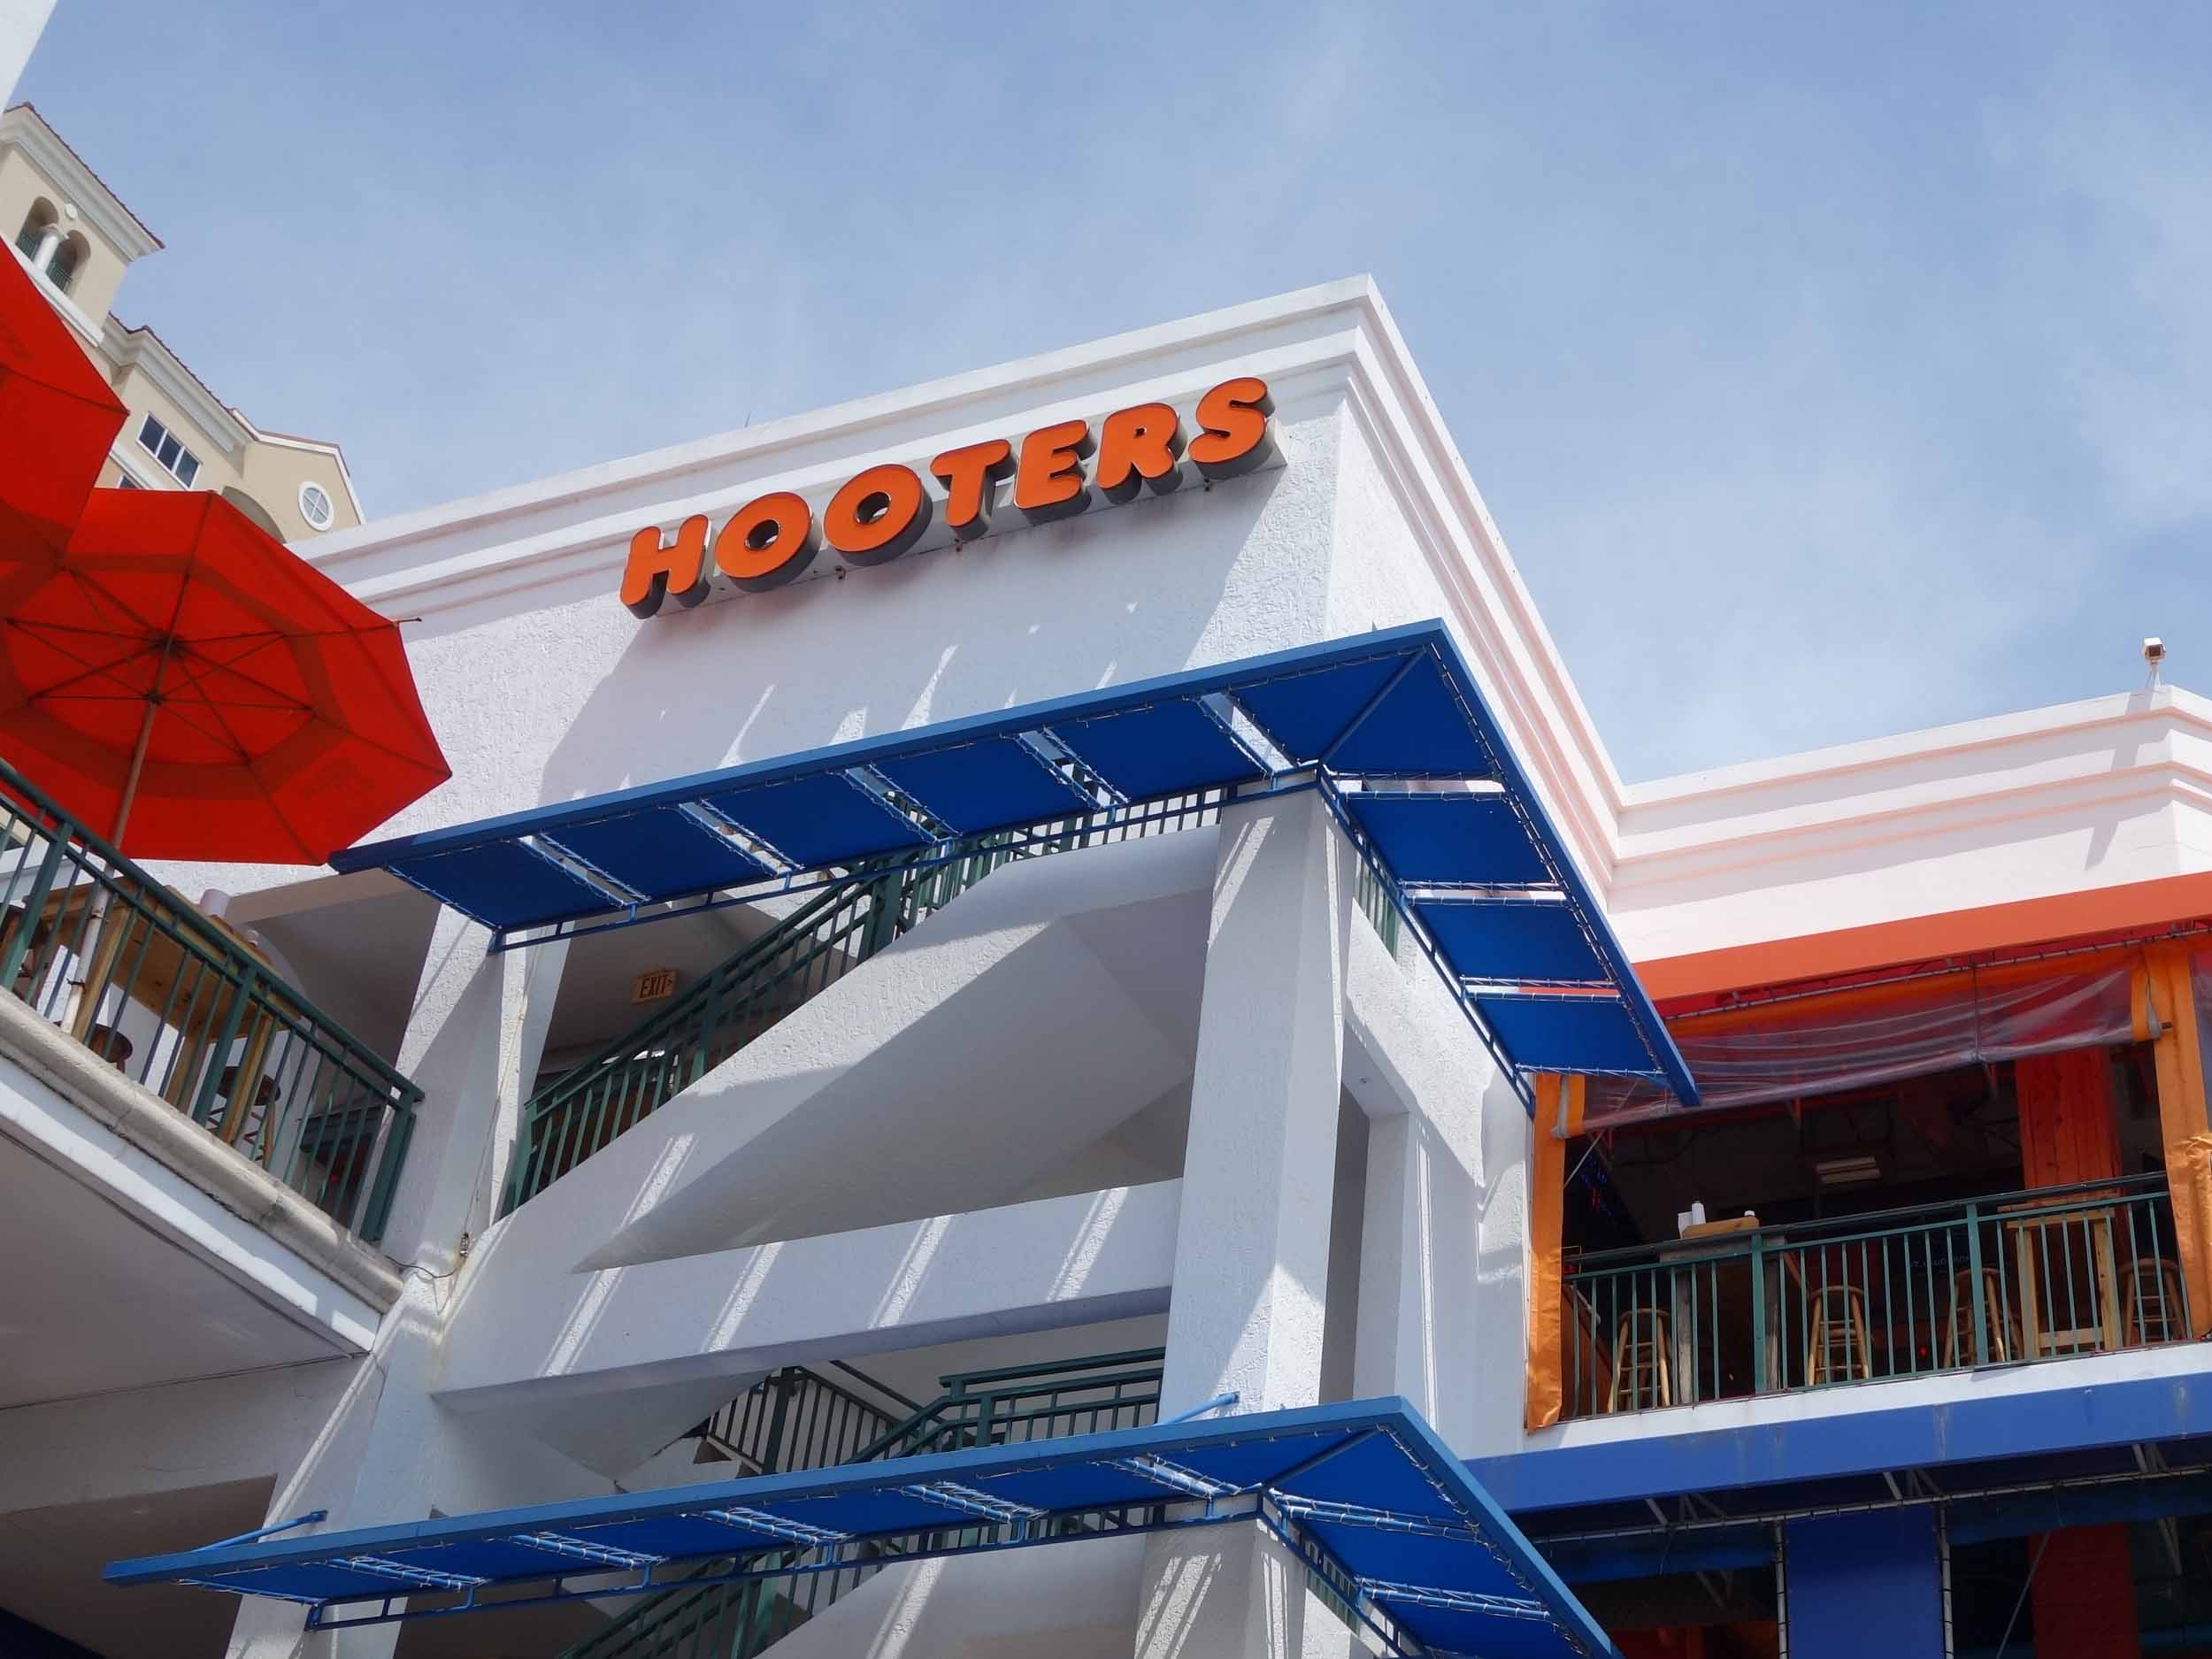 Hooters of Beachplace Exterior